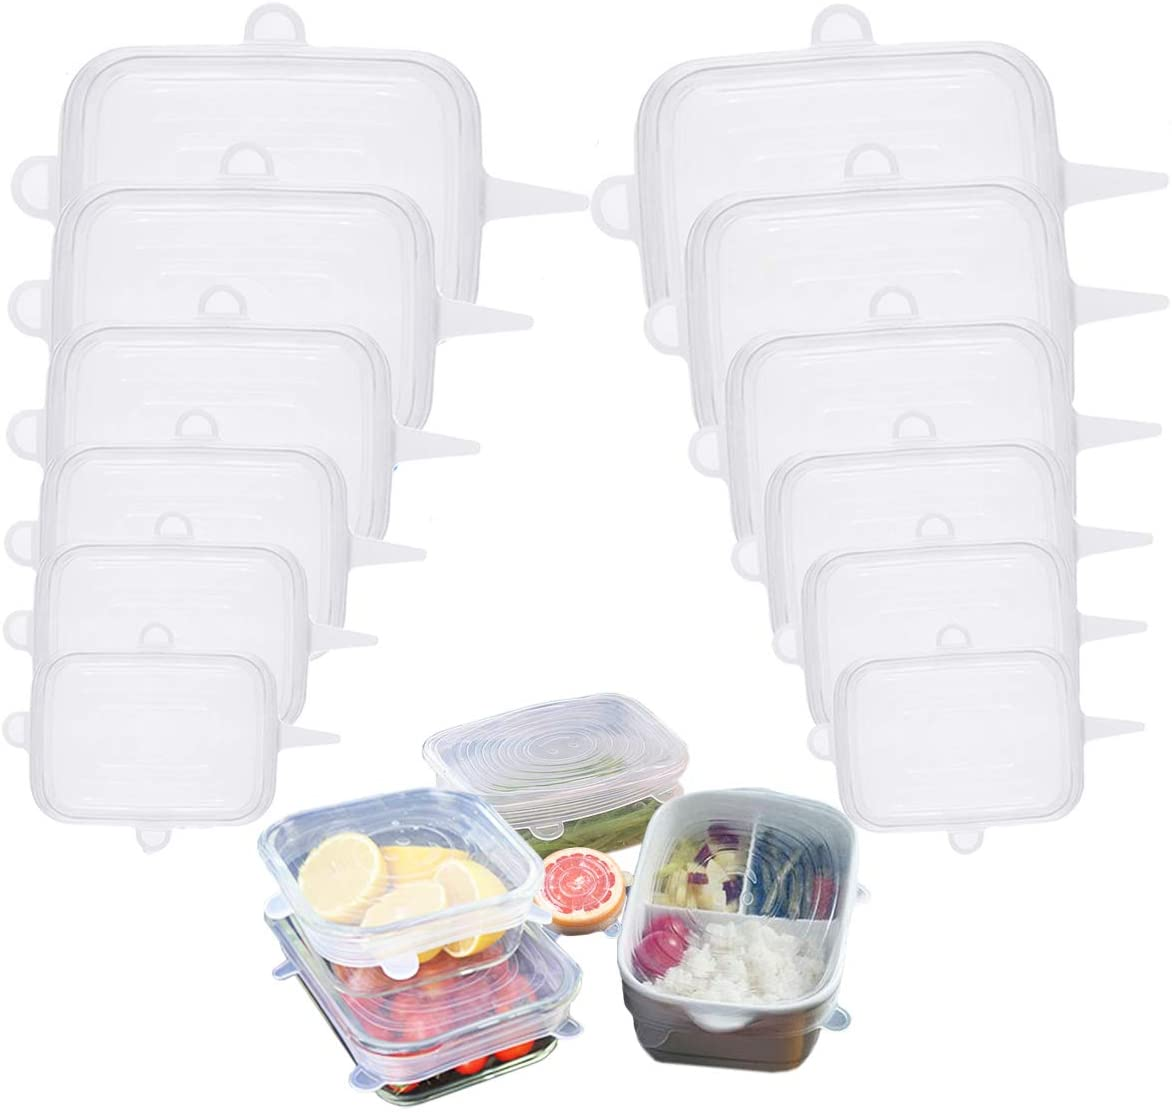 Silicone Stretch Lids Square 12-Pack, Reusable Food Container Lids, BPA-Free, Eco-Friendly Bowl Covers, Microwave, Oven & Dishwasher Safe